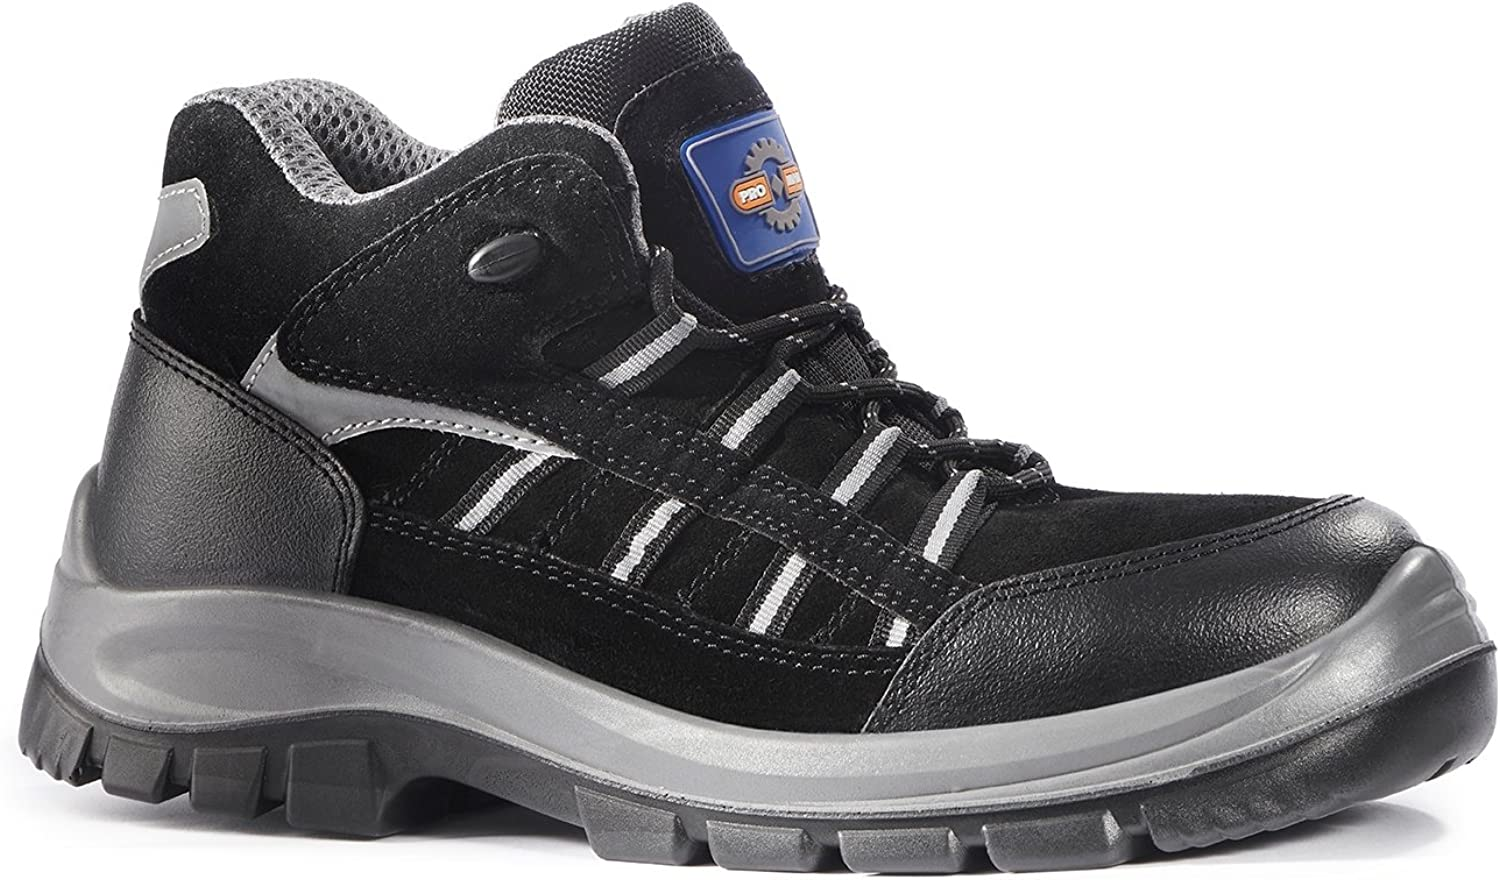 Rock Fall Pro Man Hartford ESD Black Composite Toe Cap Non-Metallic Safety Boots